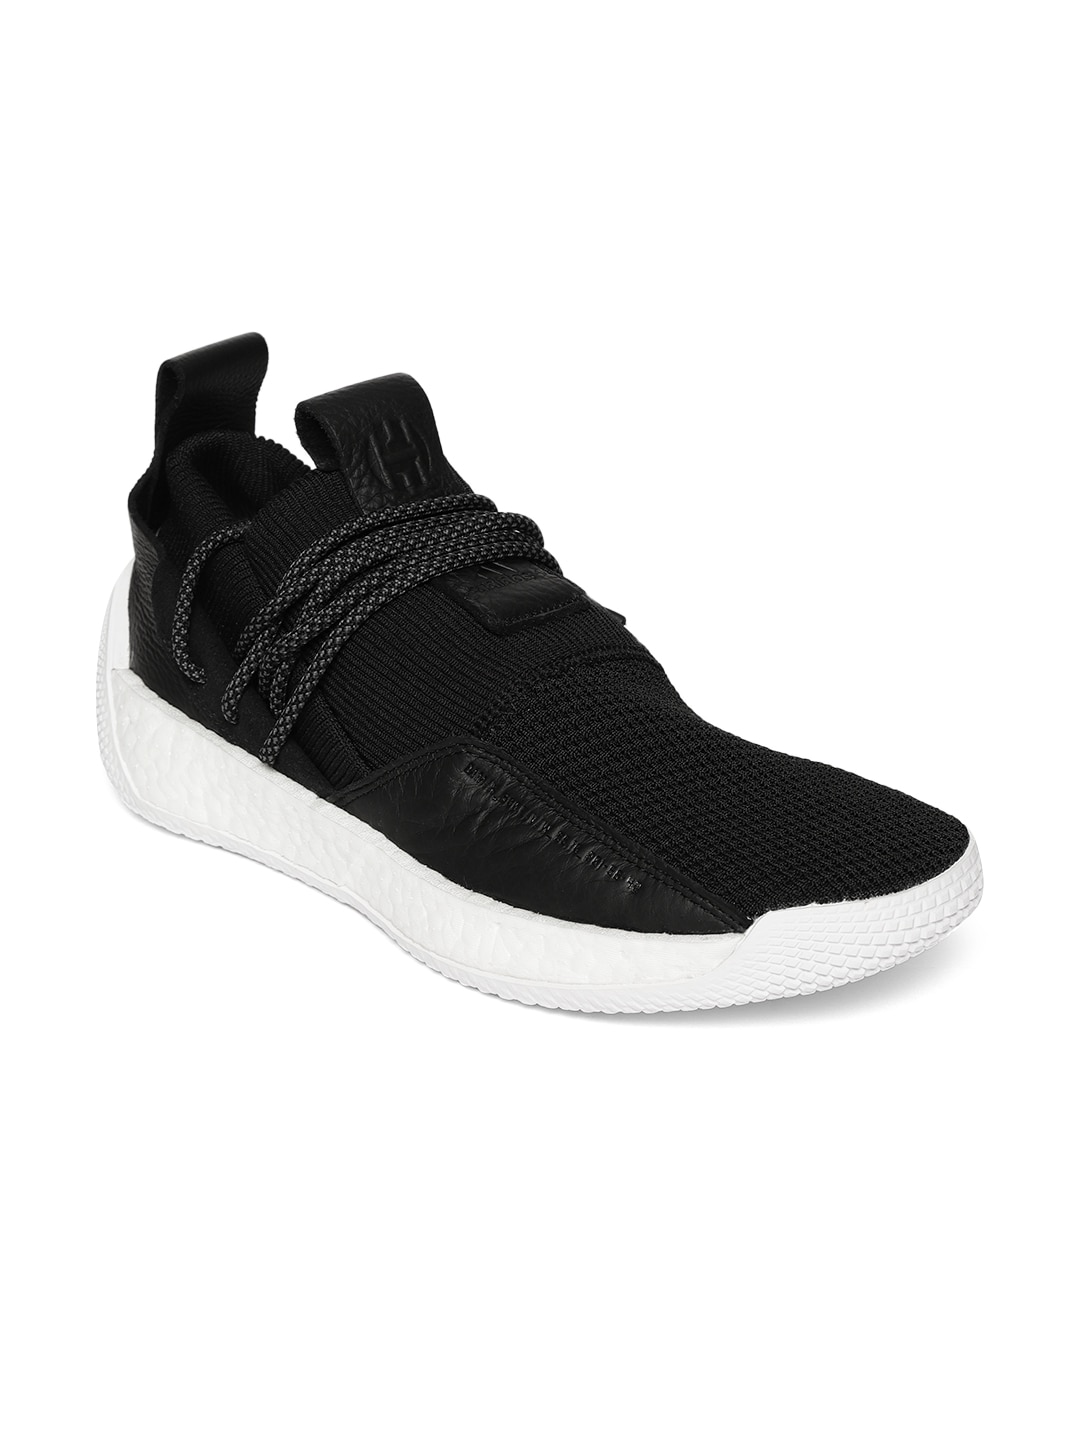 Adidas Shoes - Buy Adidas Shoes for Men   Women Online - Myntra 8946e94e8